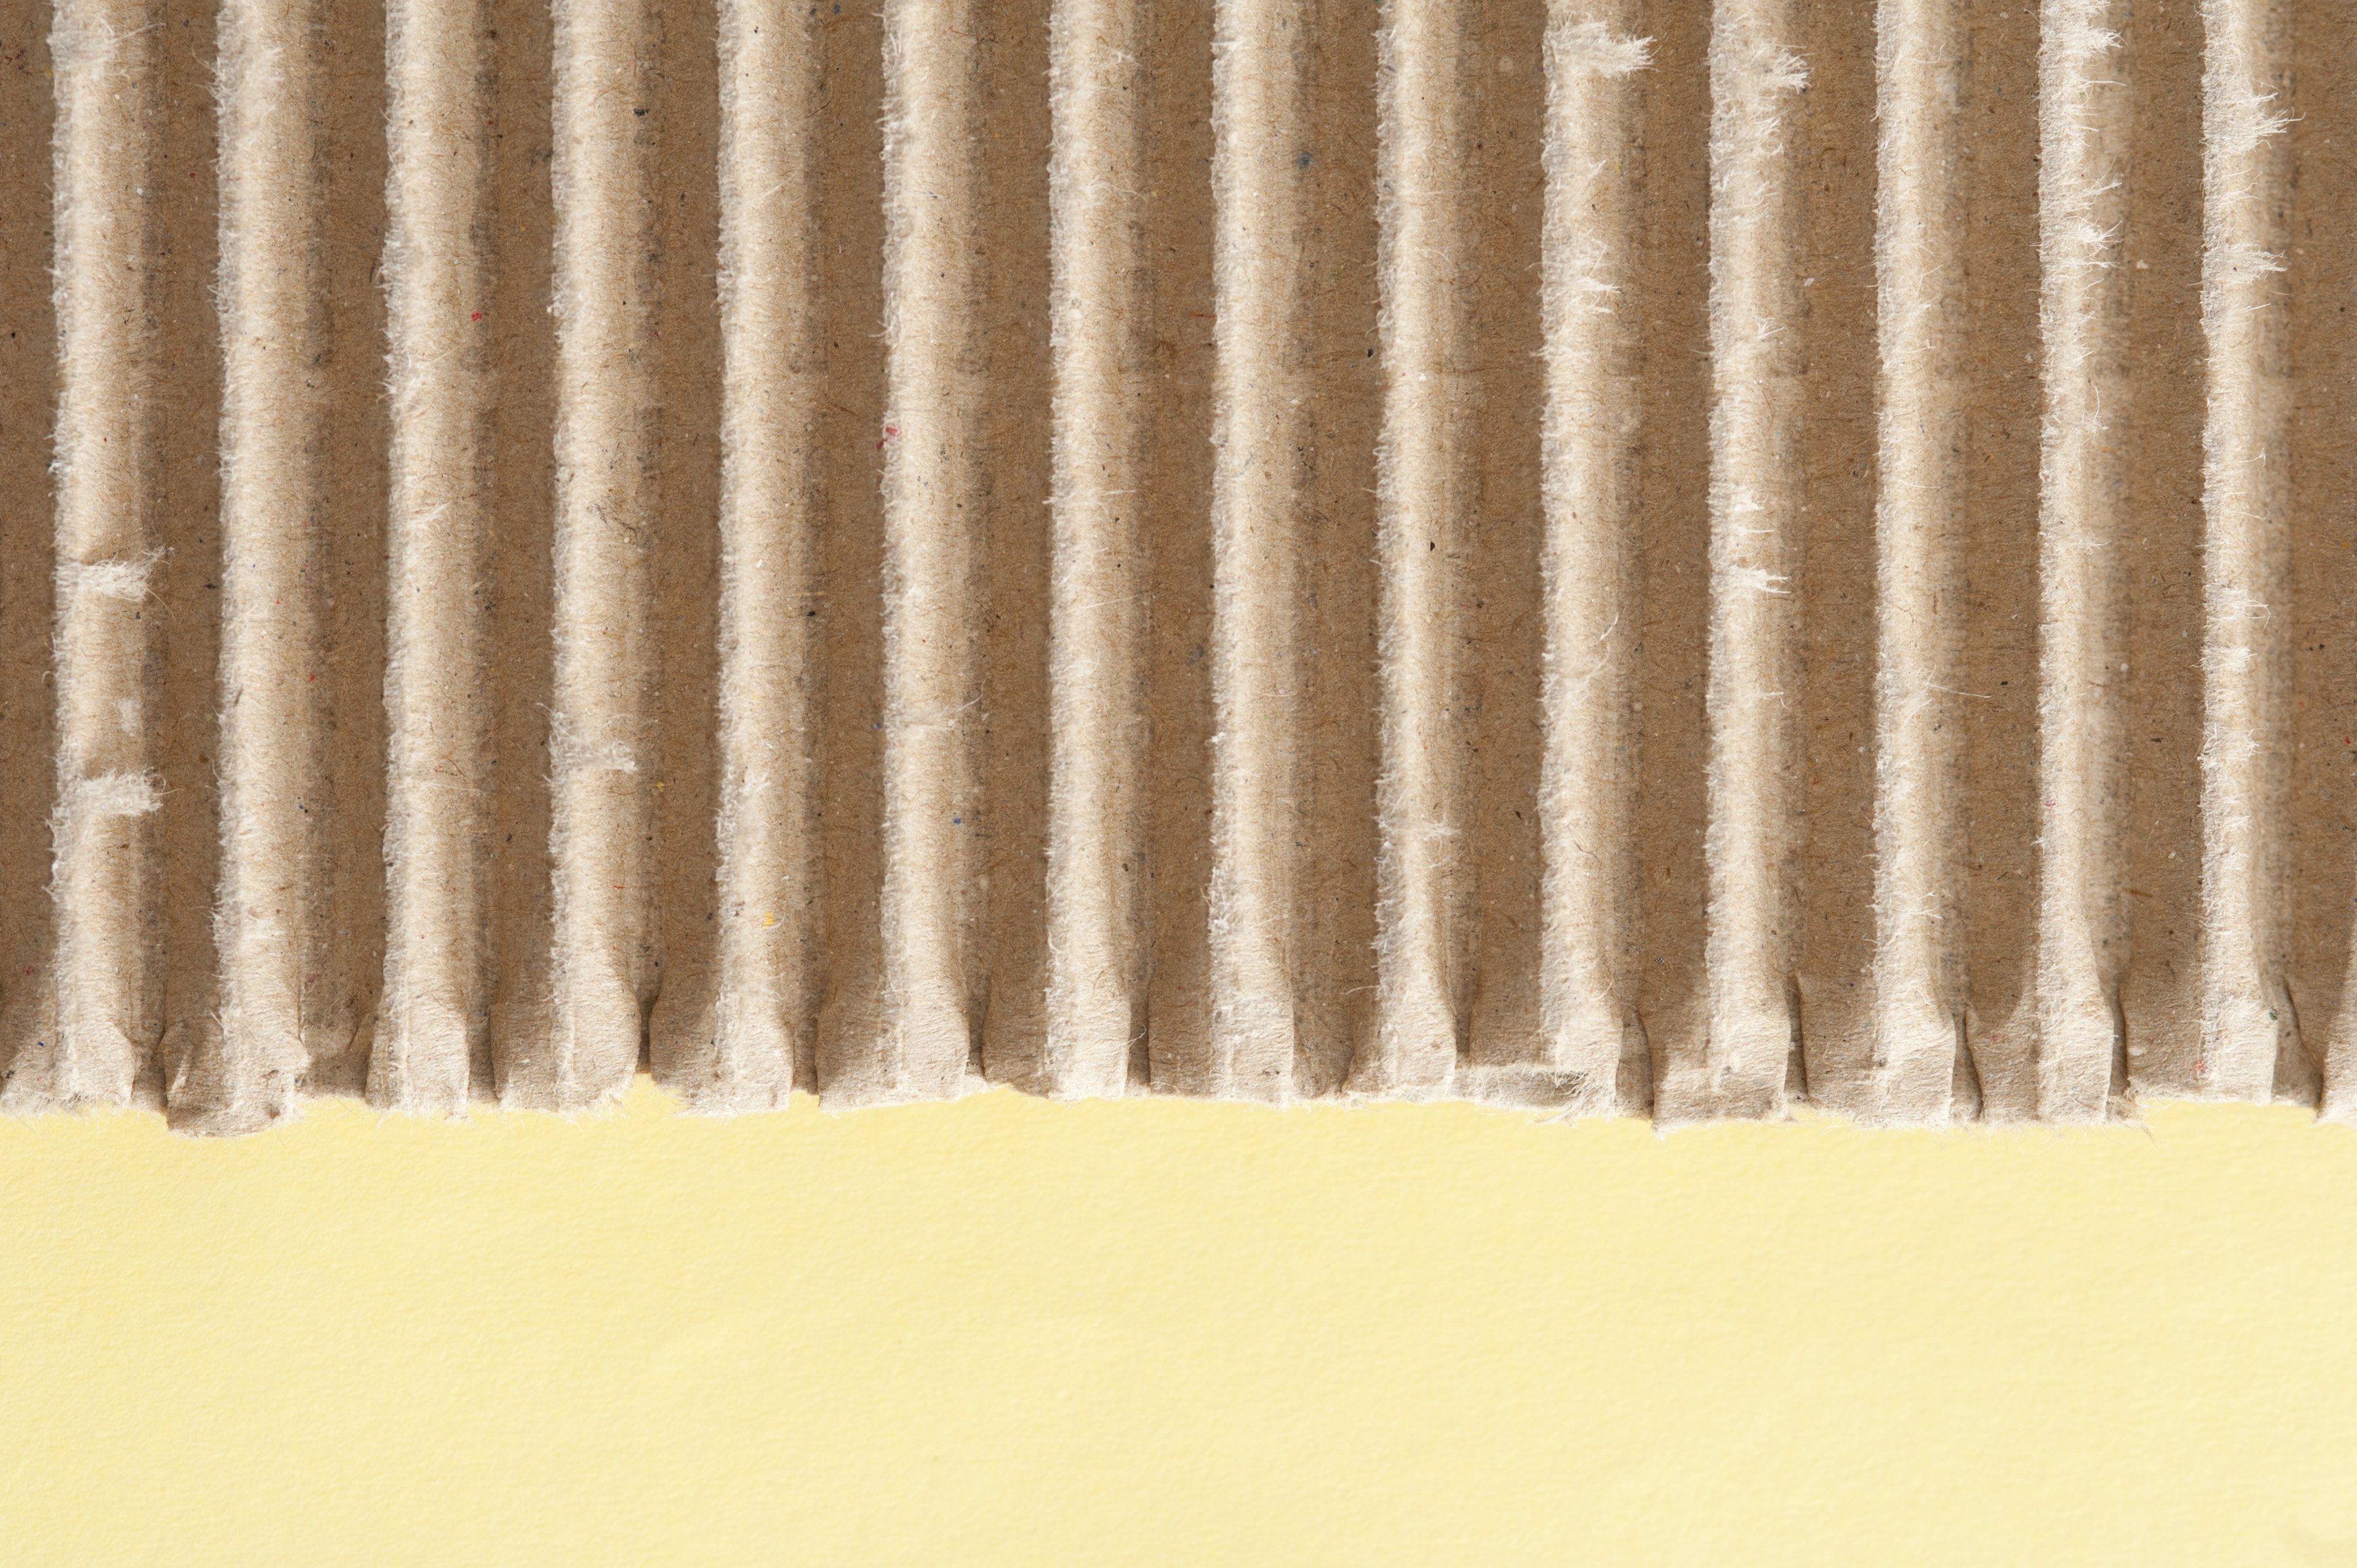 Corrugated brown cardboard texture with yellow copy space below in a close up detailed view from above of paper packaging